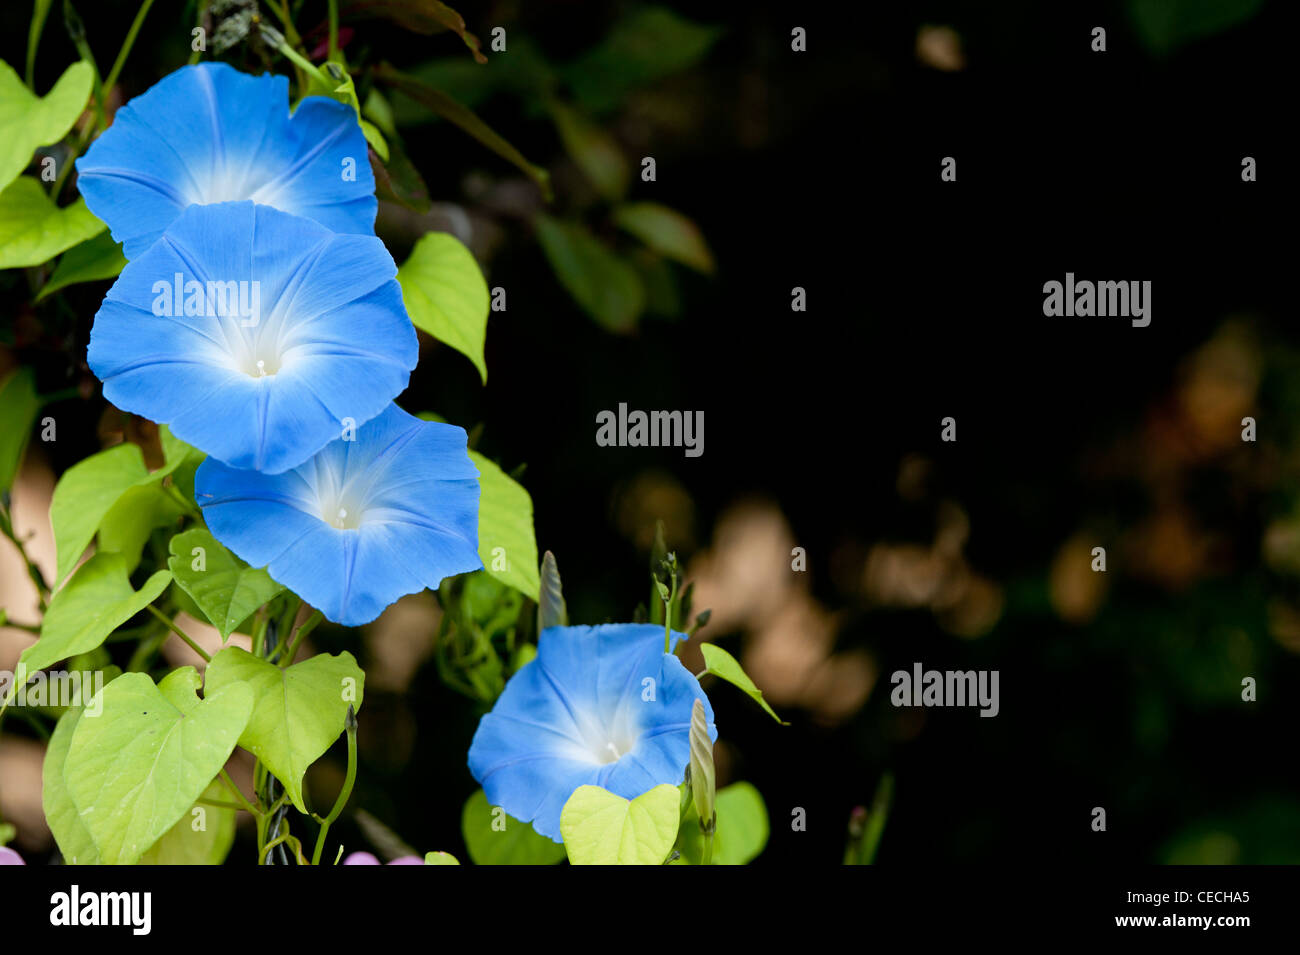 Ipomoea tricolor 'heavenly blue' flower against a dark background - Stock Image